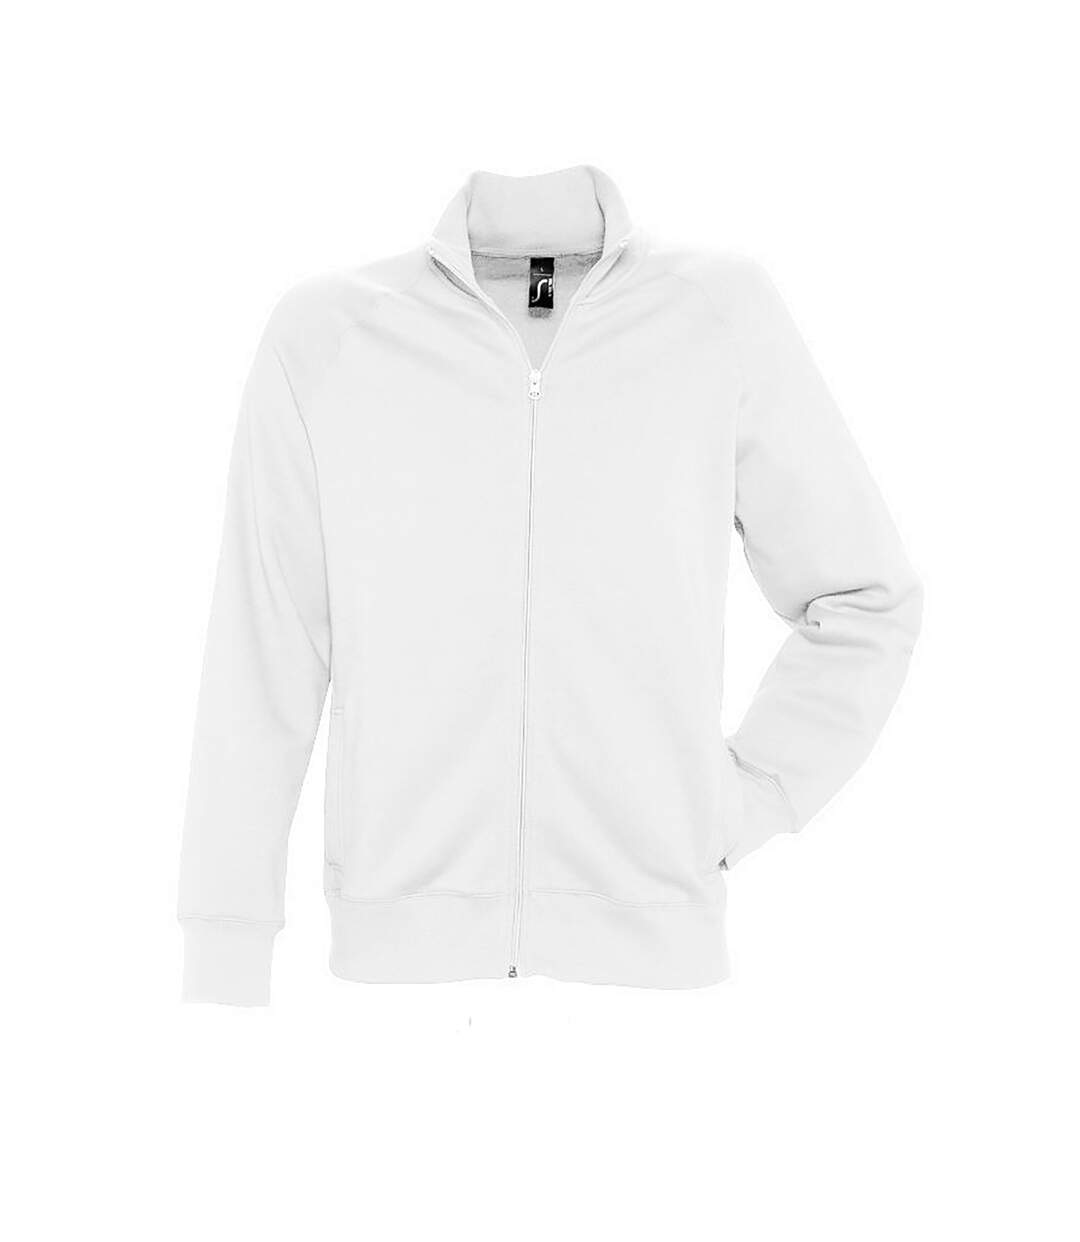 SOLS Mens Sundae Full Zip Sweat Jacket (White) - UTPC408